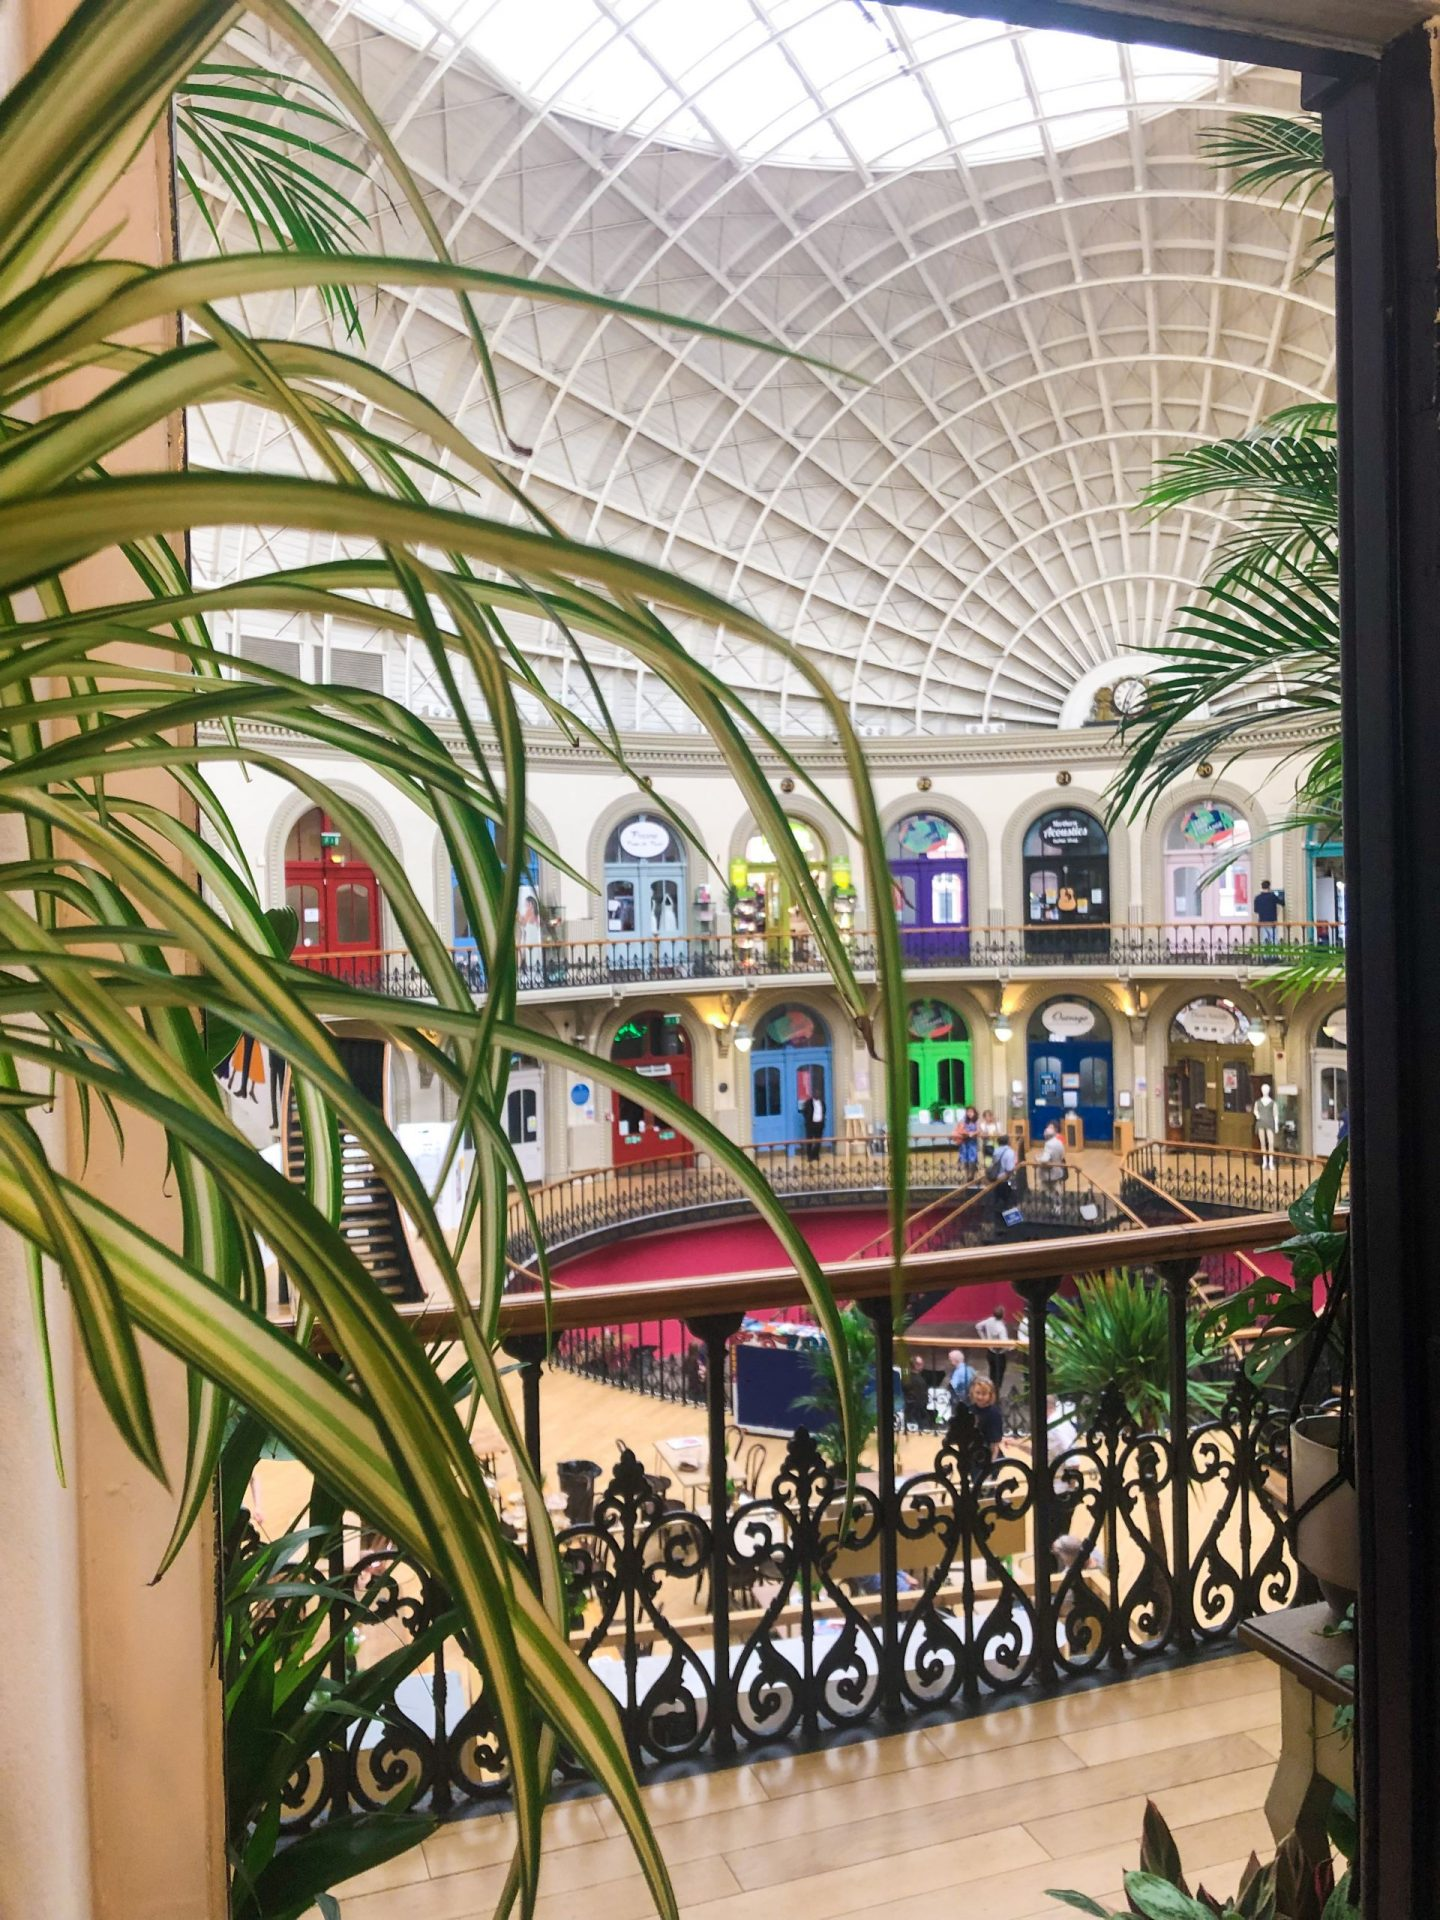 things to do in leeds city centre - inside the corn exchange taken from one of the shops on the balcony level